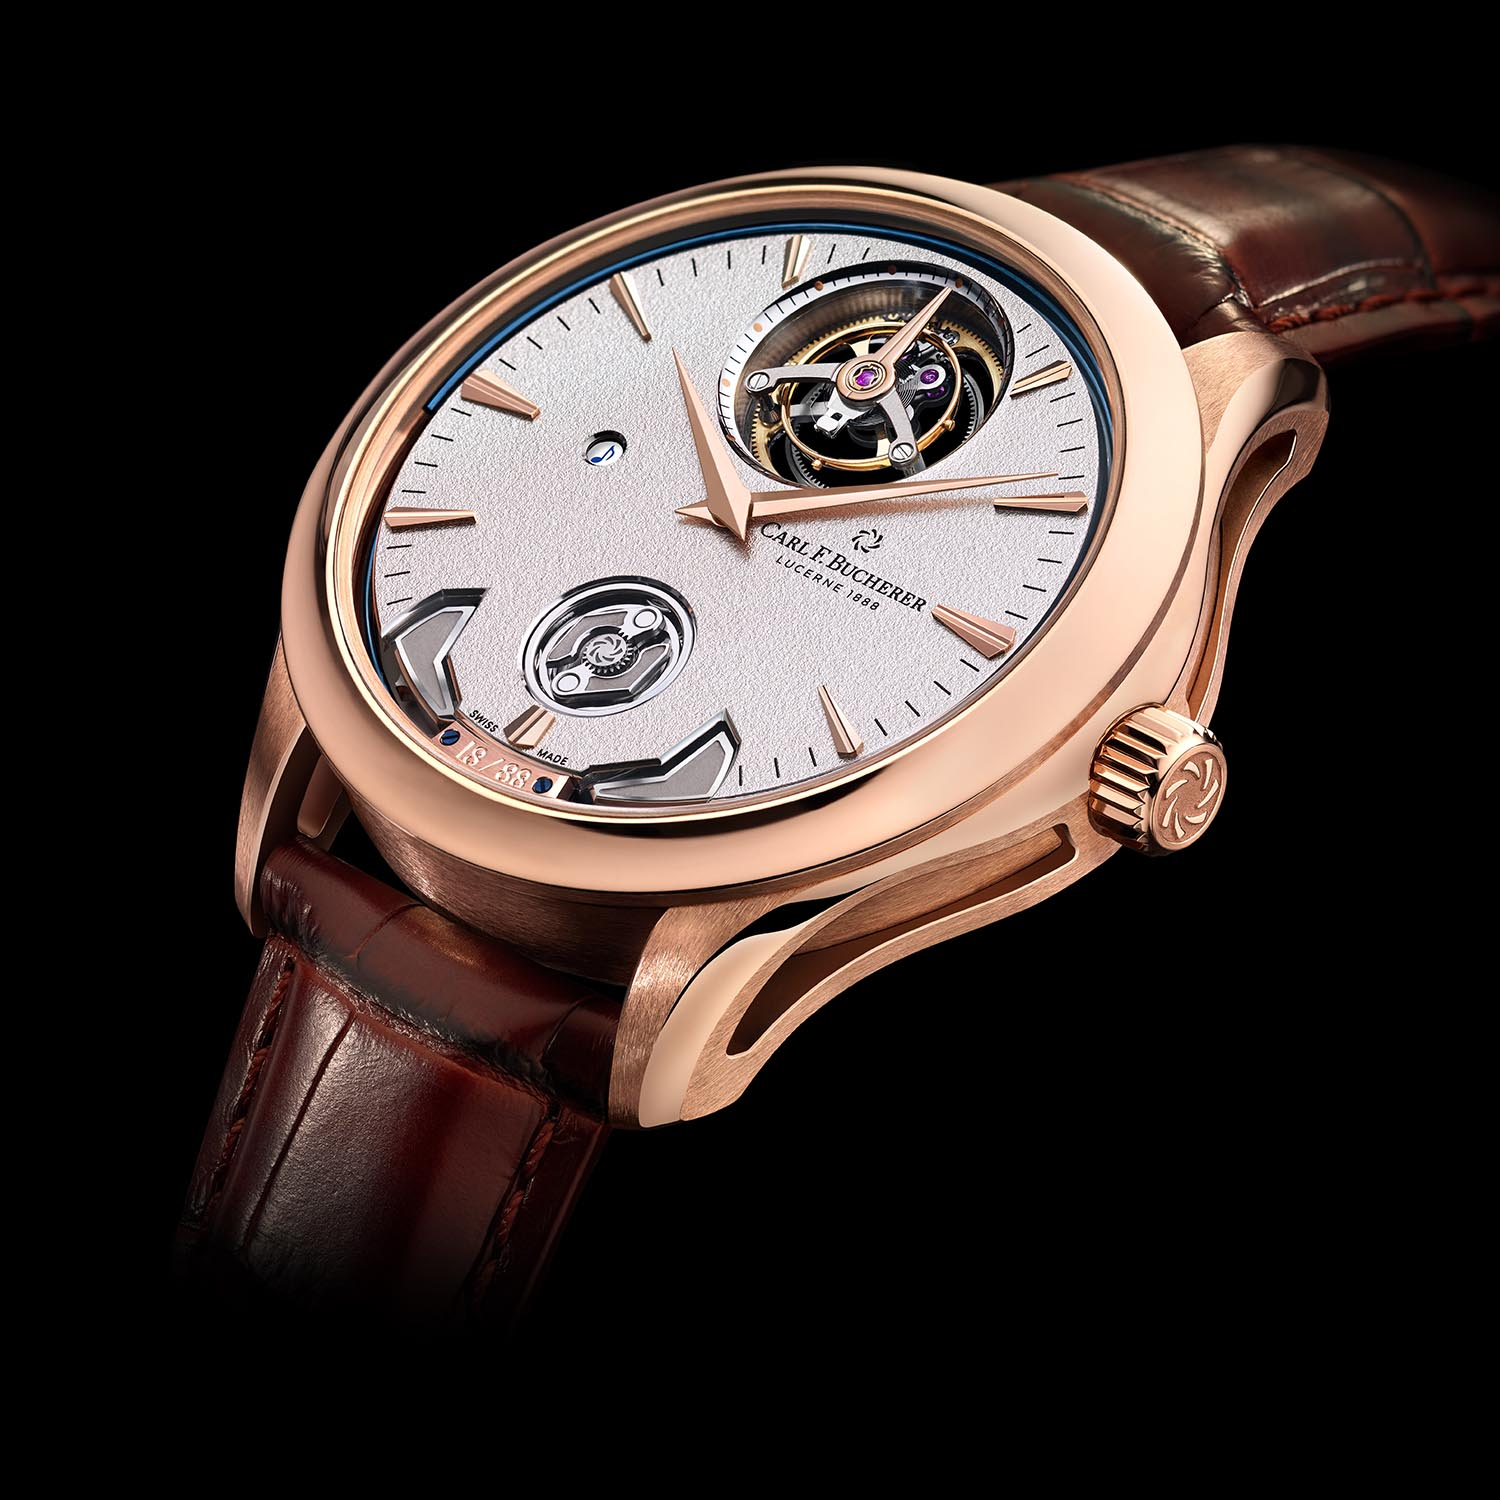 Carl F. Bucherer Manero Minute Repeater Symphony Triple Peripheral